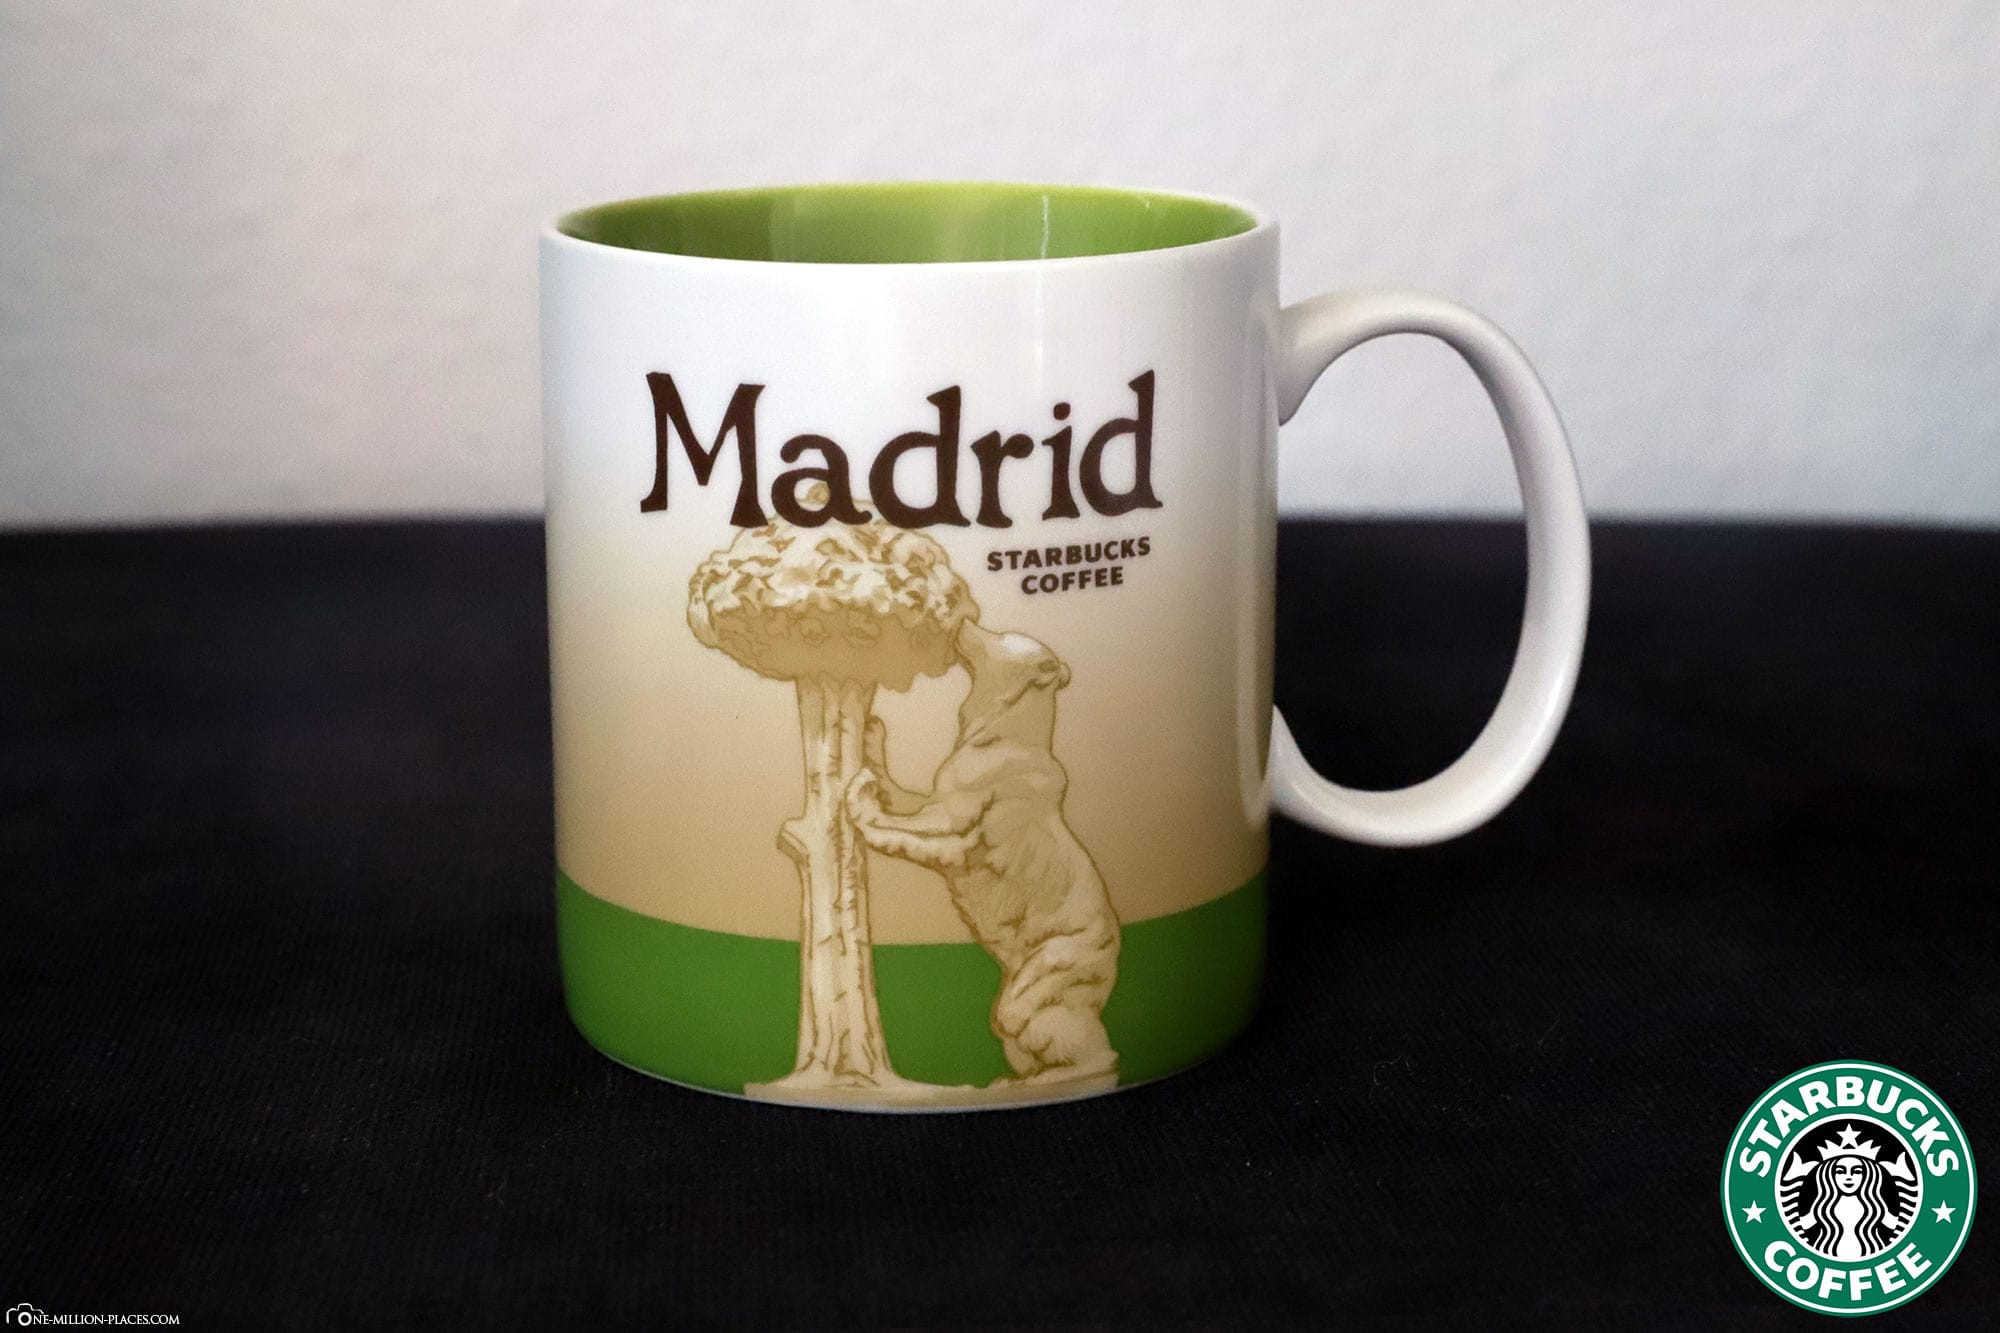 Madrid, Starbucks Cup, Global Icon Series, City Mugs, Collection, Spain, Travelreport